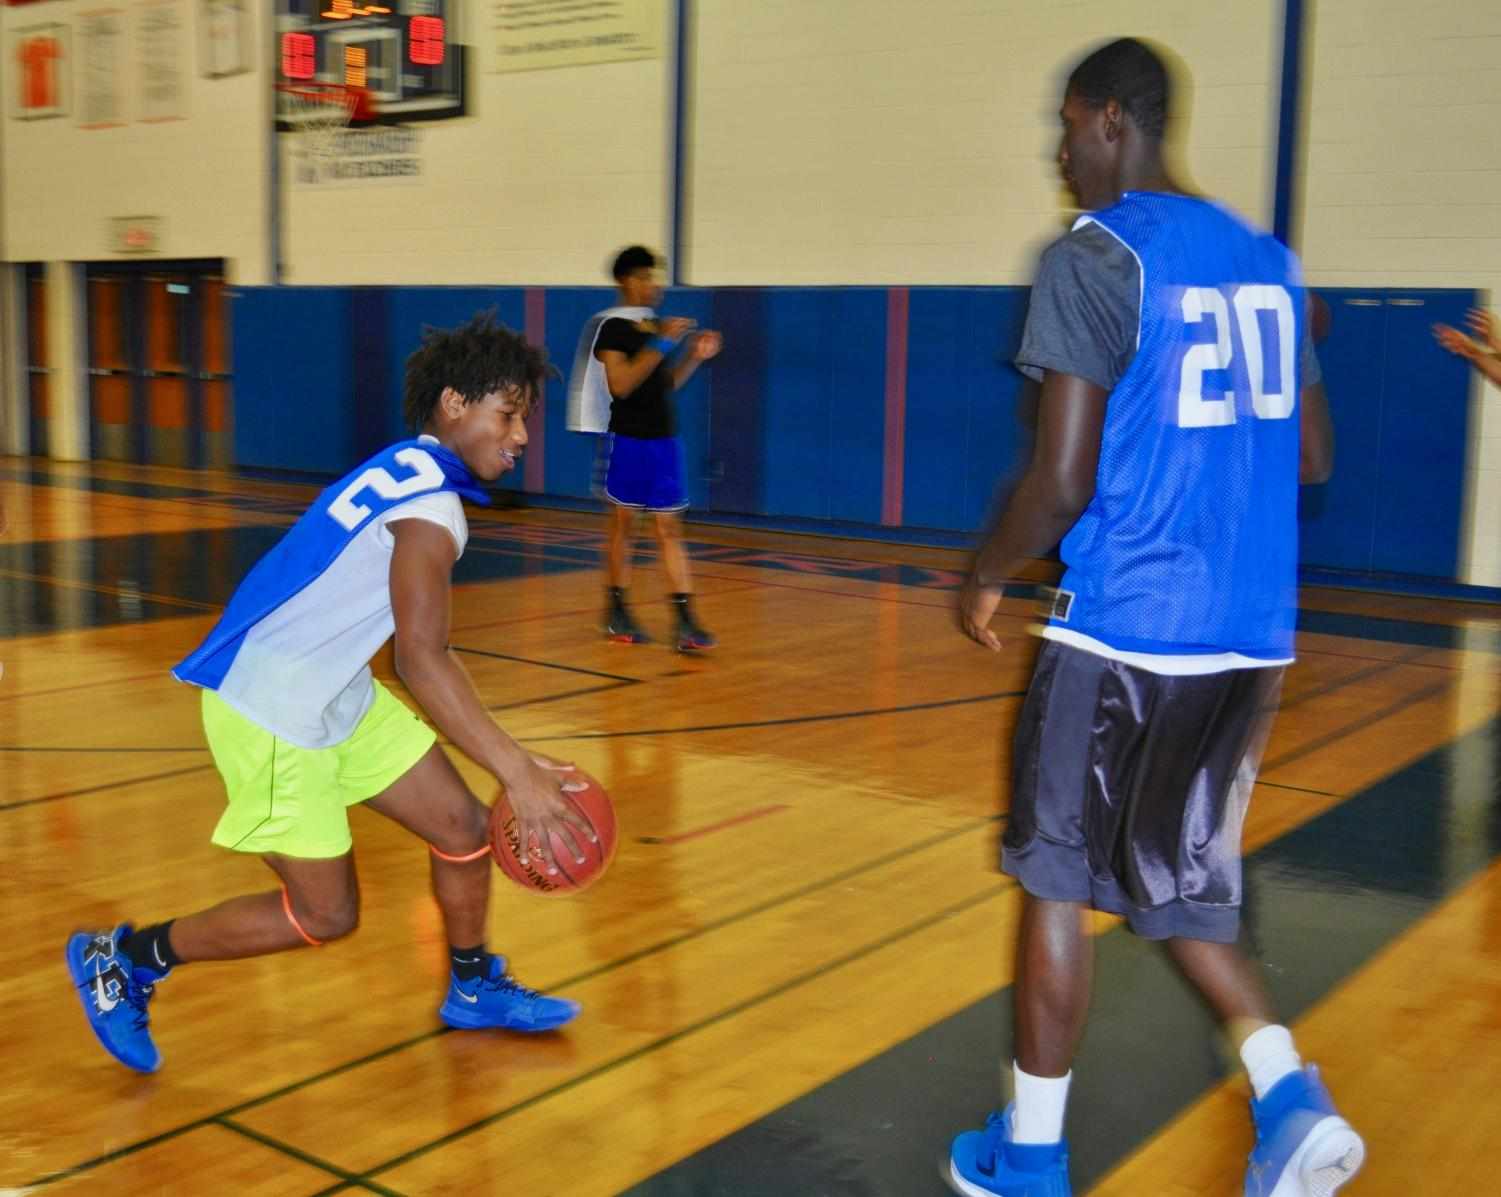 Artez Taft, varsity freshmen, and Jah Joyner, varsity junior, practice together.